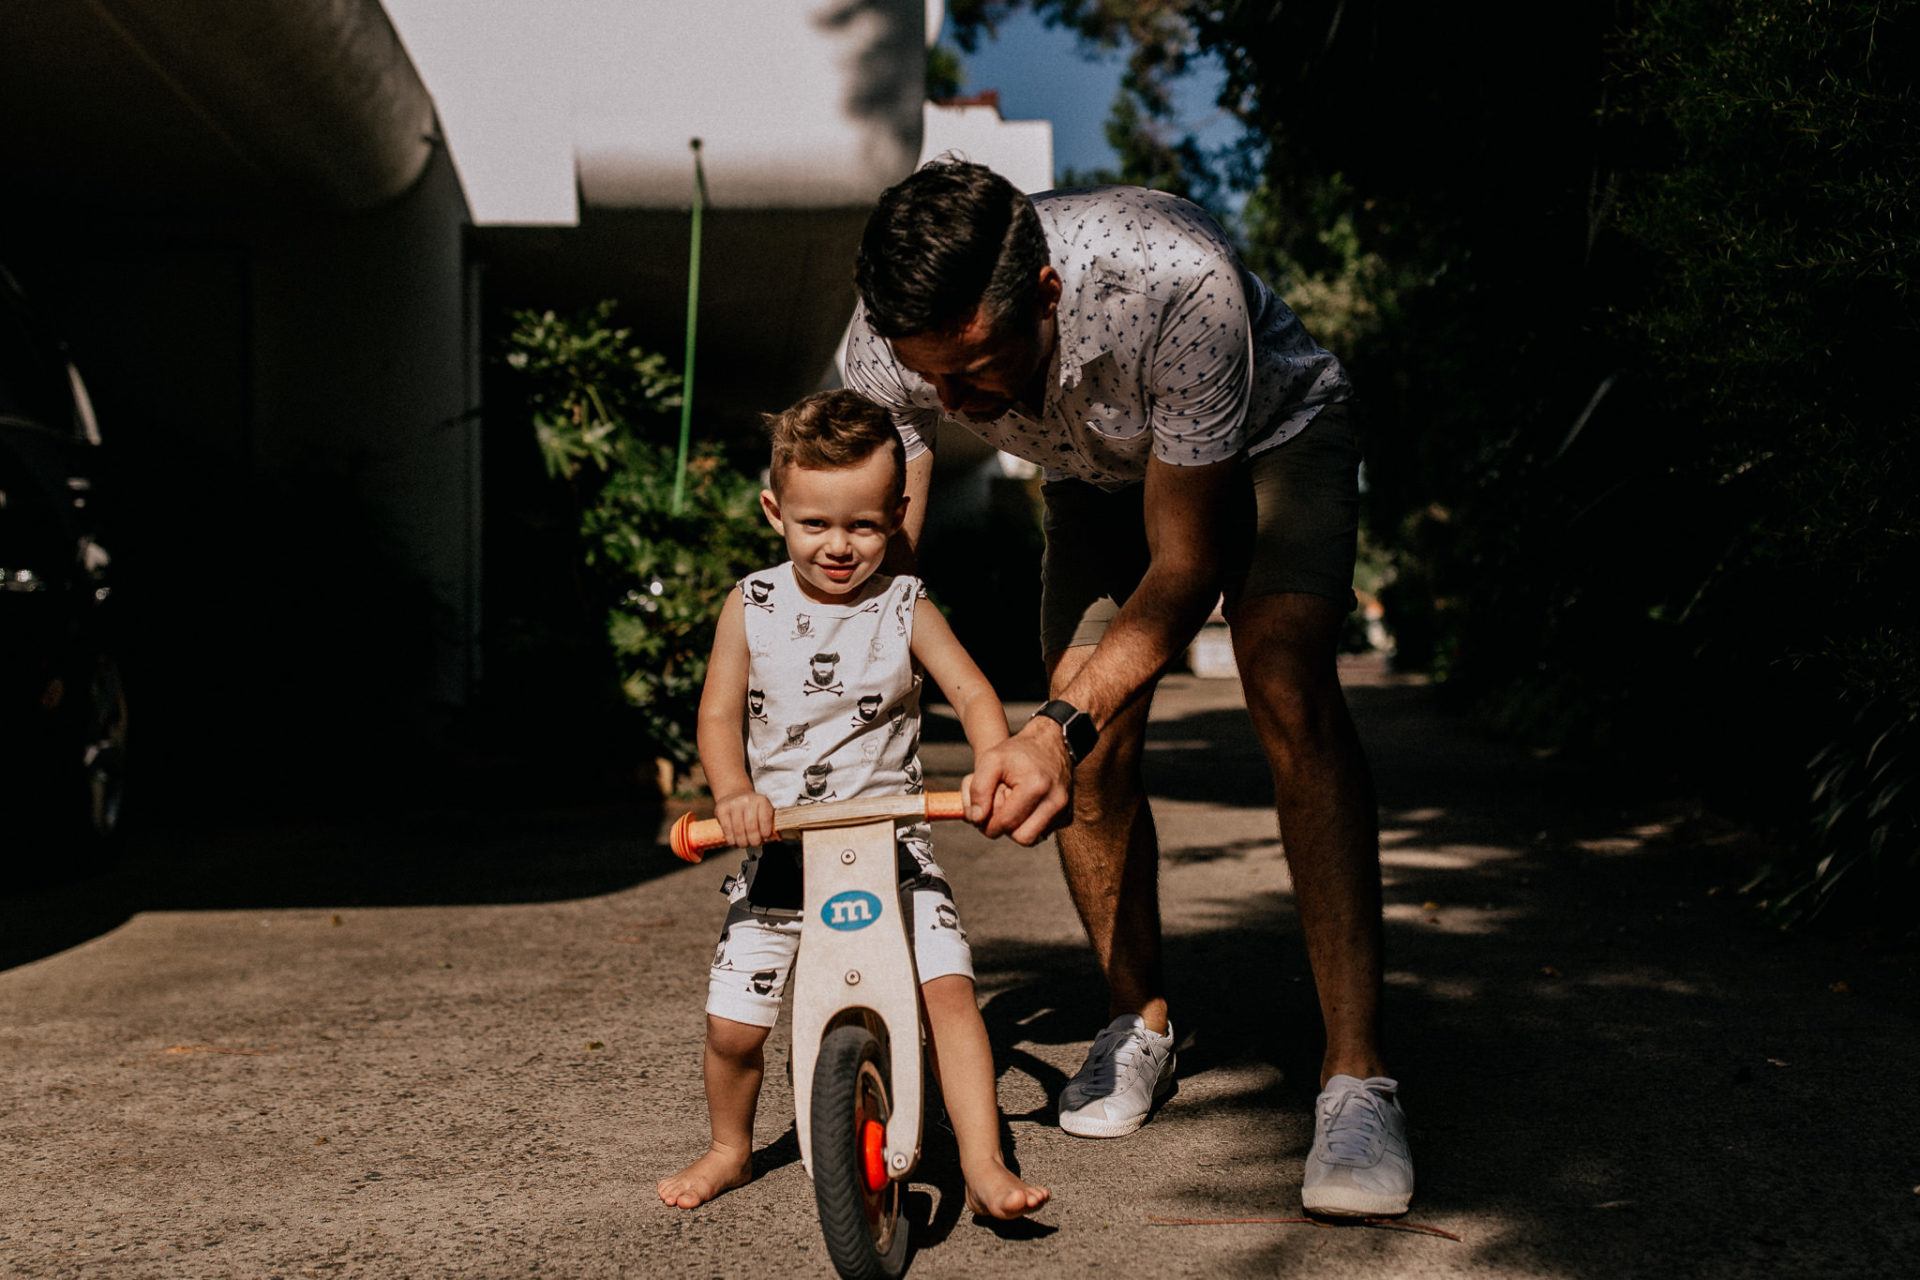 Sydney family photographer-homestory with kids-quirky documentary unposed wedding photography-melbourne family photography-candid moments-hip kids apparel